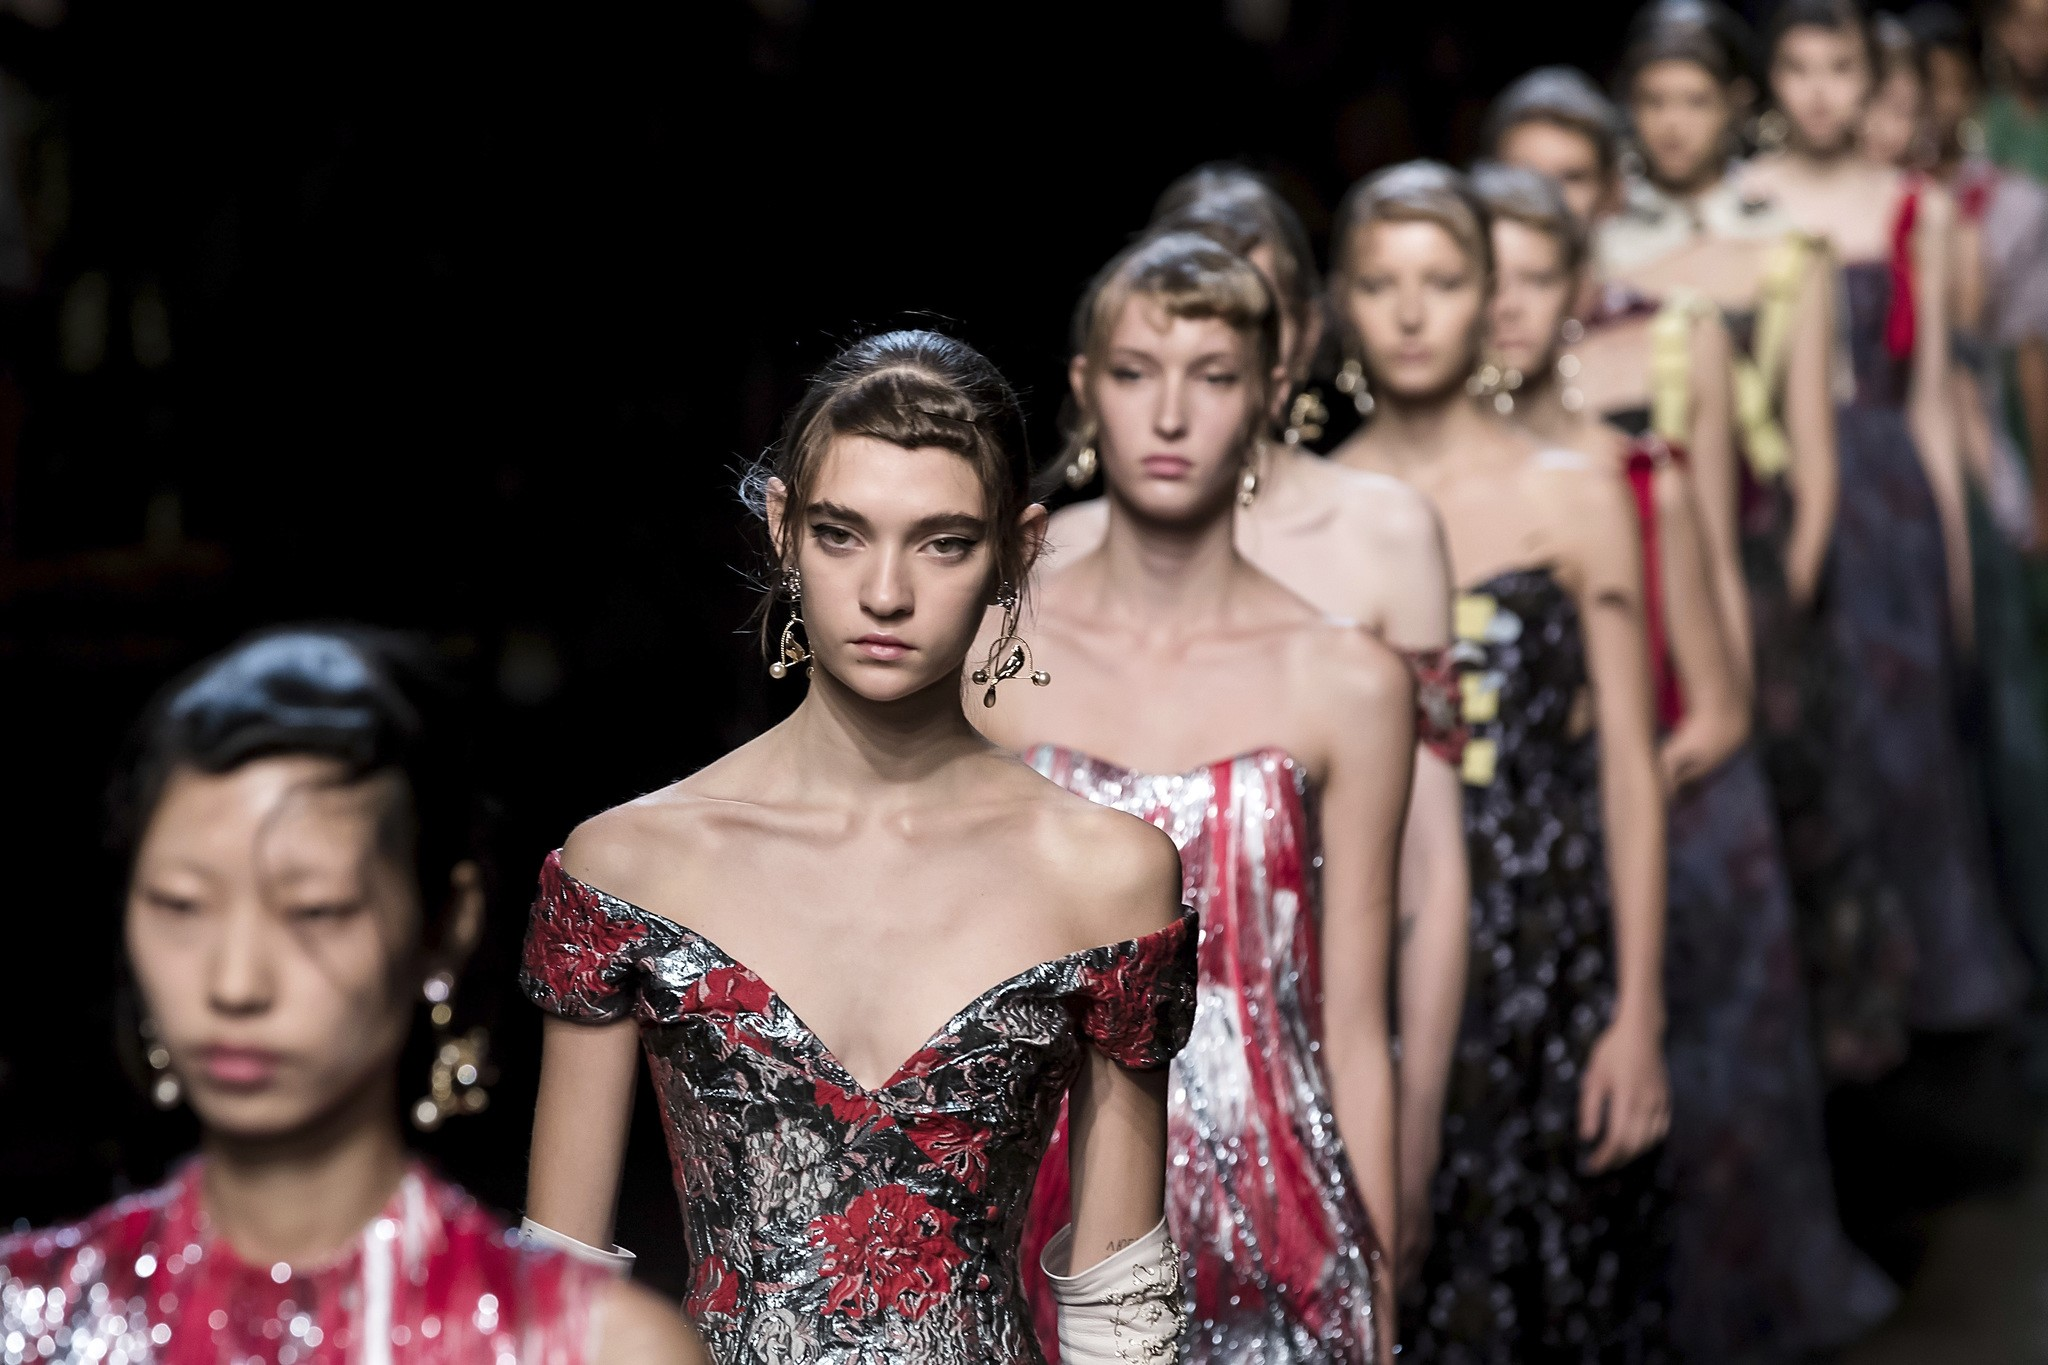 Models wear creations by designer Erdem during the Spring/Summer 2018 runway show at London Fashion Week in London, Sept. 18, 2017. (AP Photo)